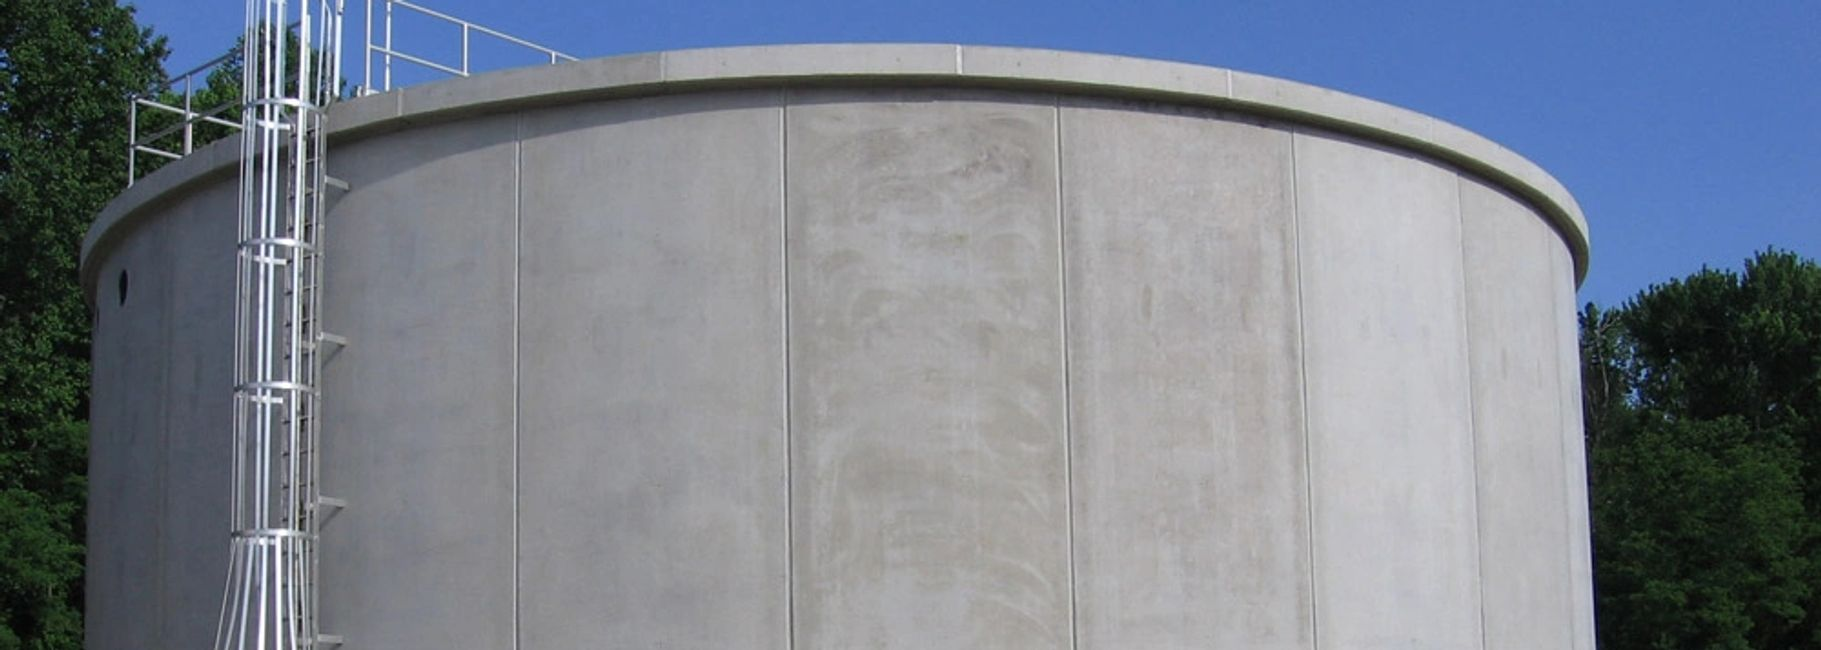 Waterproof concrete clarifier